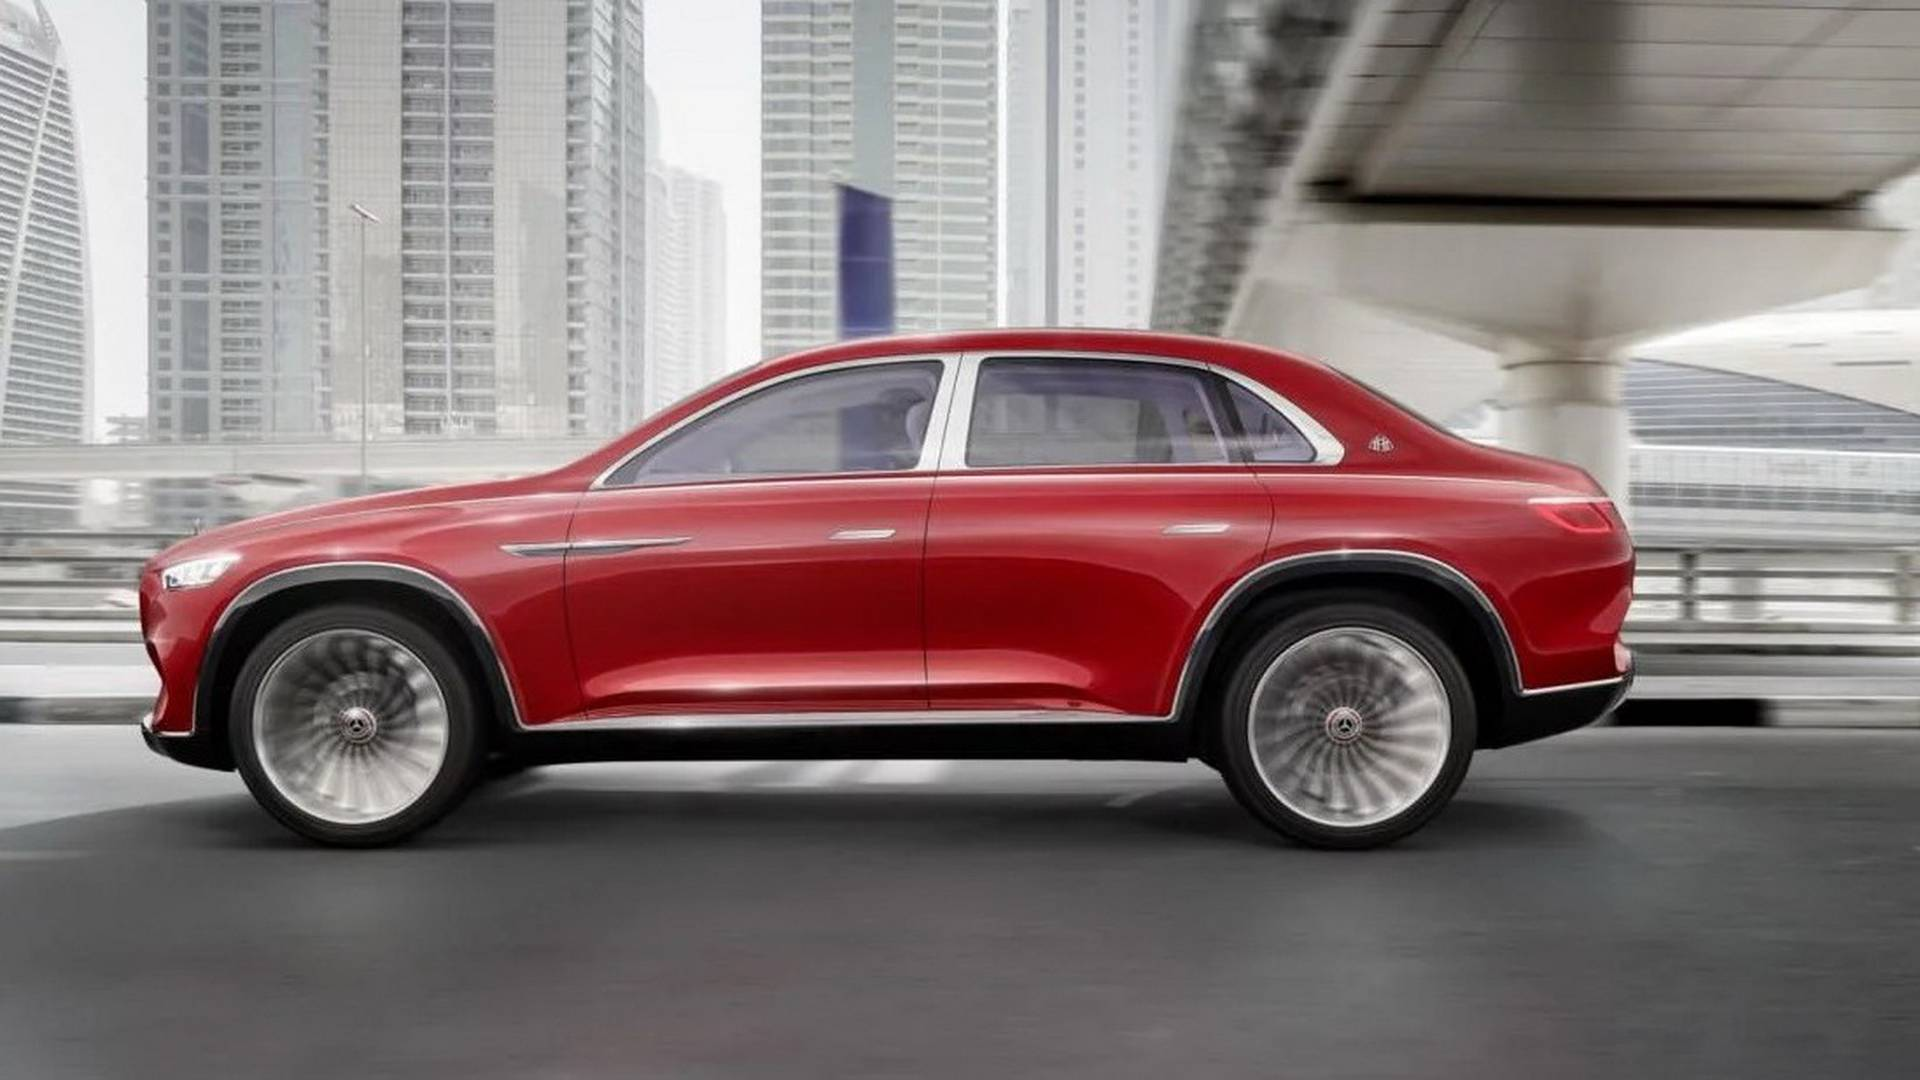 vision-mercedes-maybach-ultimate-luxury-leaked-official-image (4).jpg